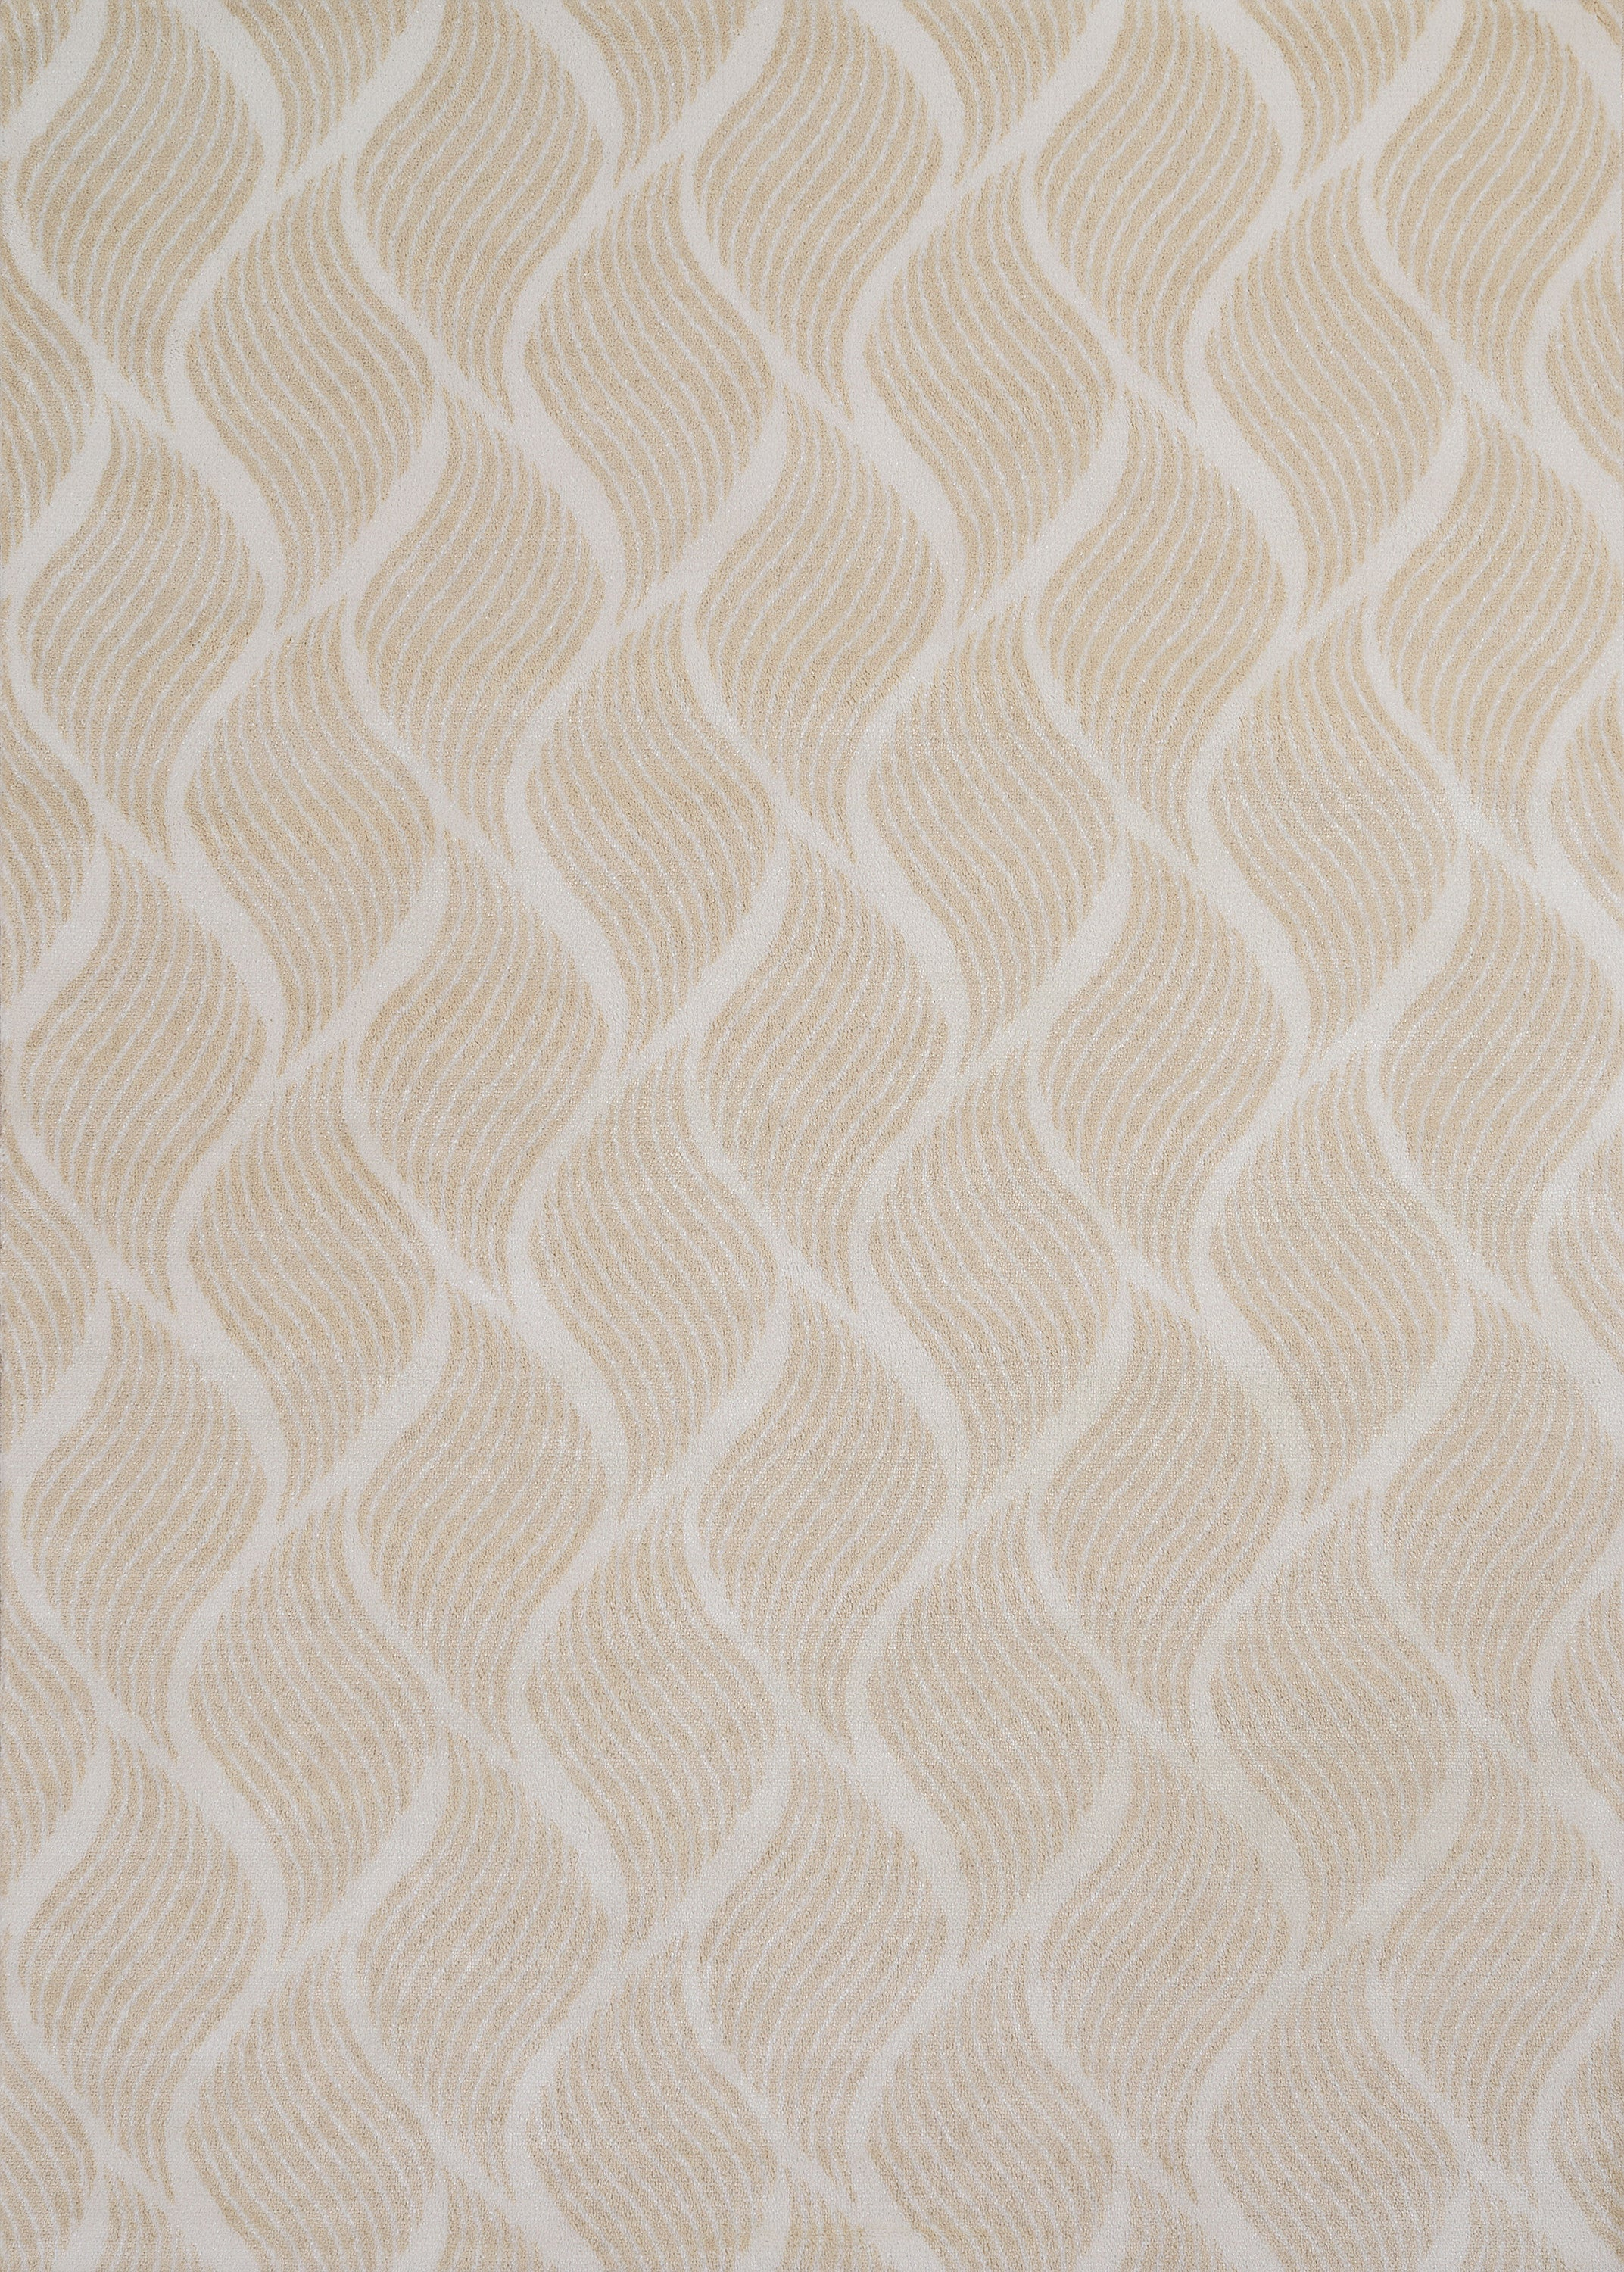 United Weavers - Nouveau Rug Collection -  SASSOON BONE (421-10101)